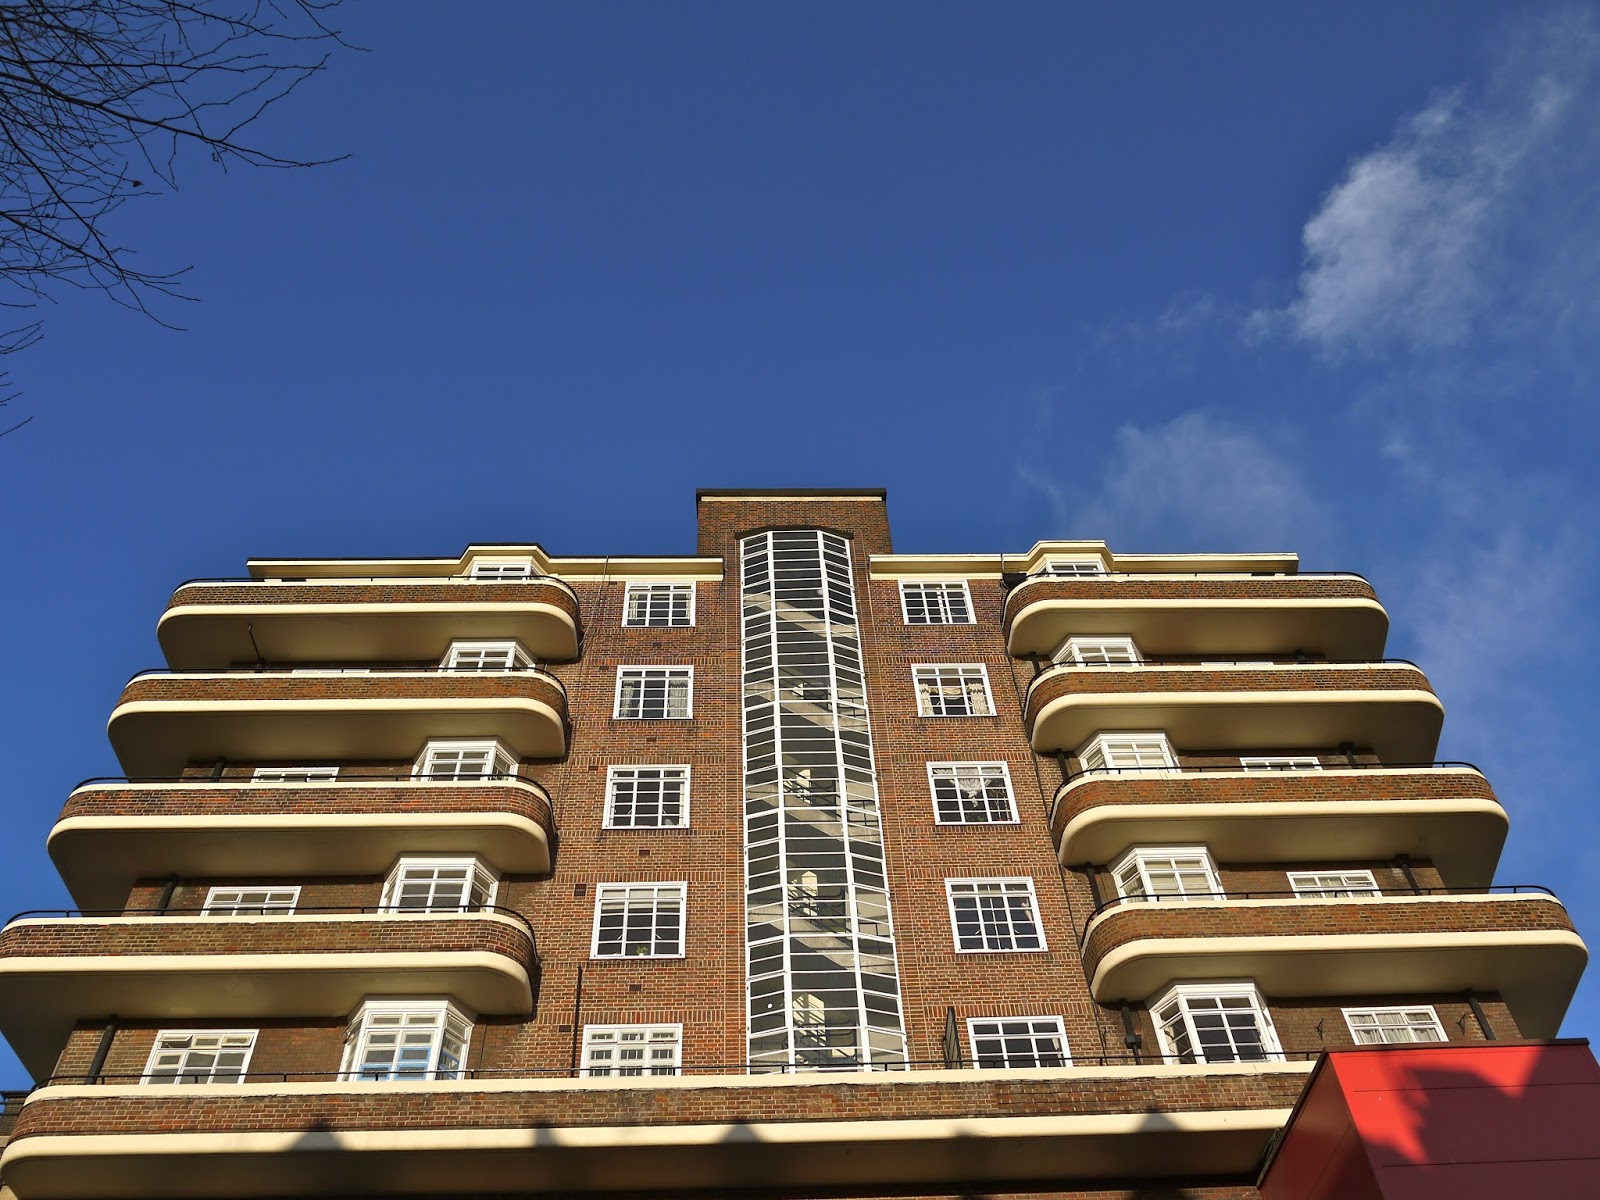 adrian yekkes picture post 49 art deco on finchley road